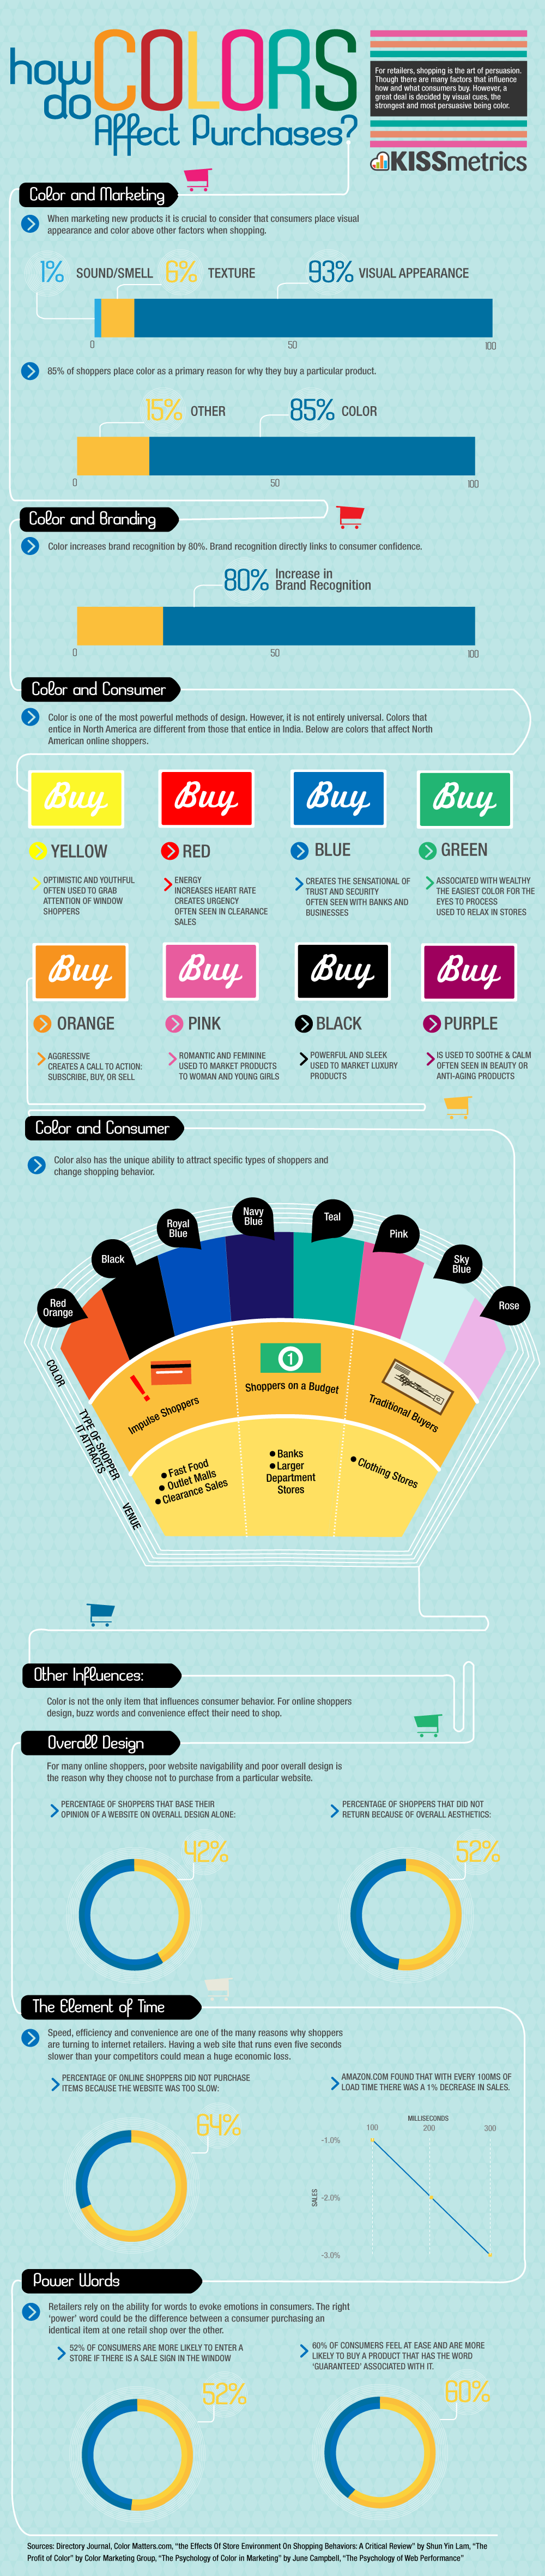 conversion-optimization-color-purchases